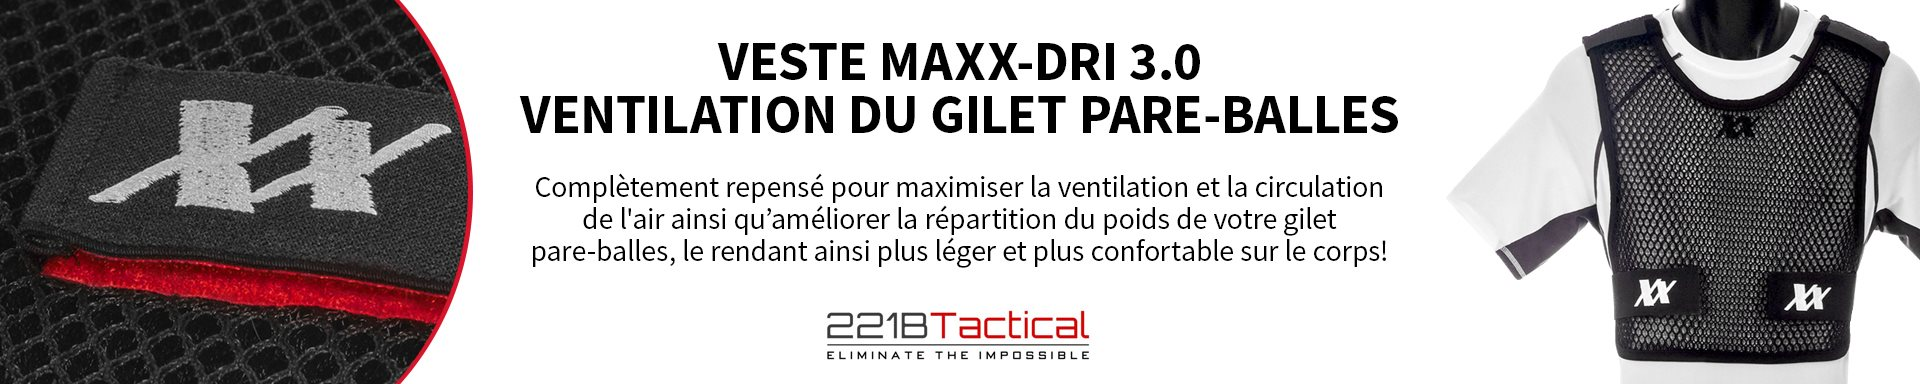 221B Tactical - Veste Maxx-Dri 3.0